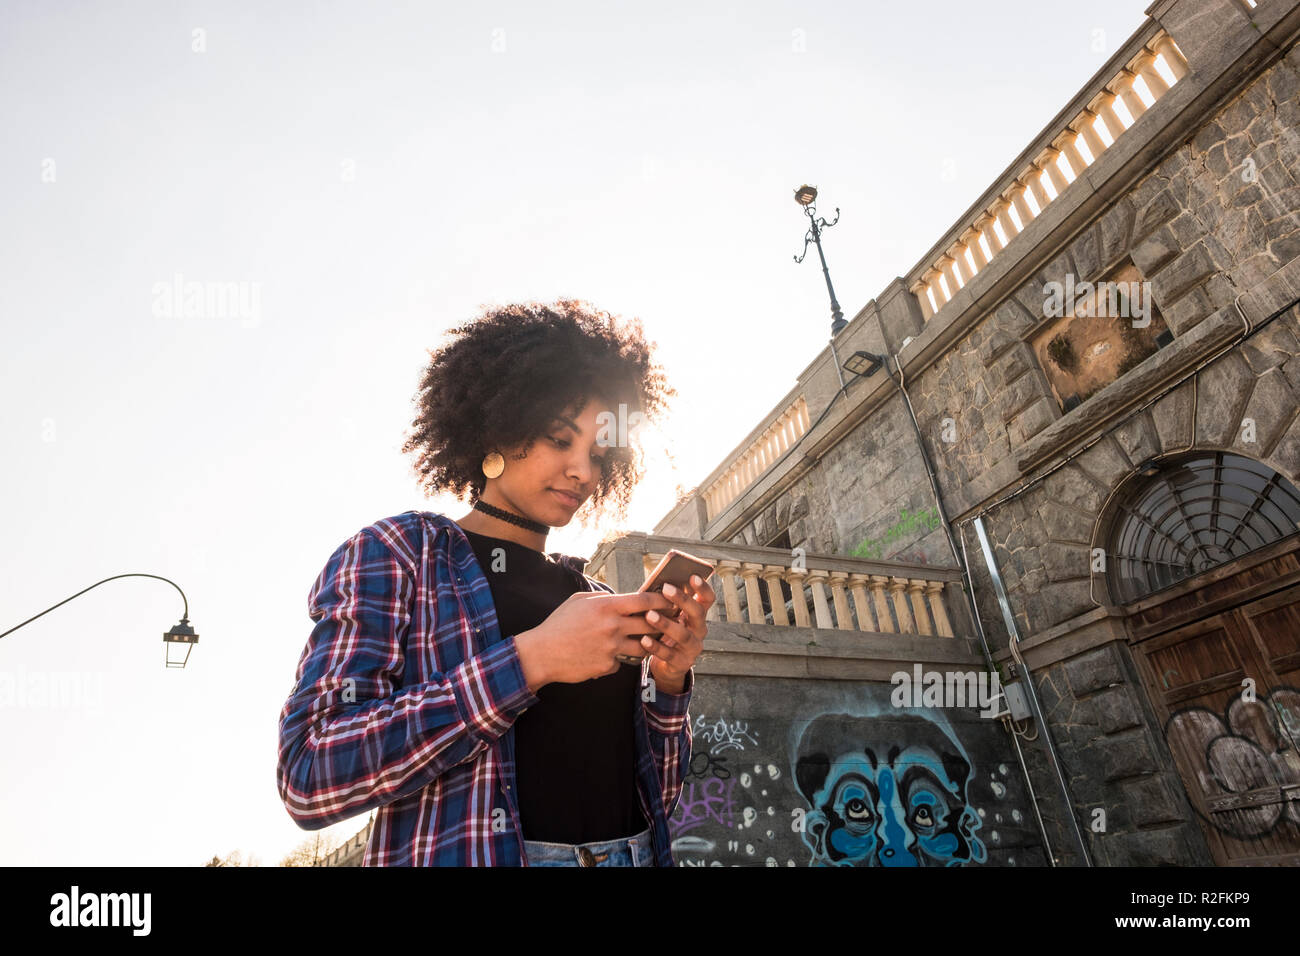 beautiful young woman walking in the city using a smart phone to send messages to friends or check for email and social networks profilesl youthful people in urban contest and lifestyle - Stock Image